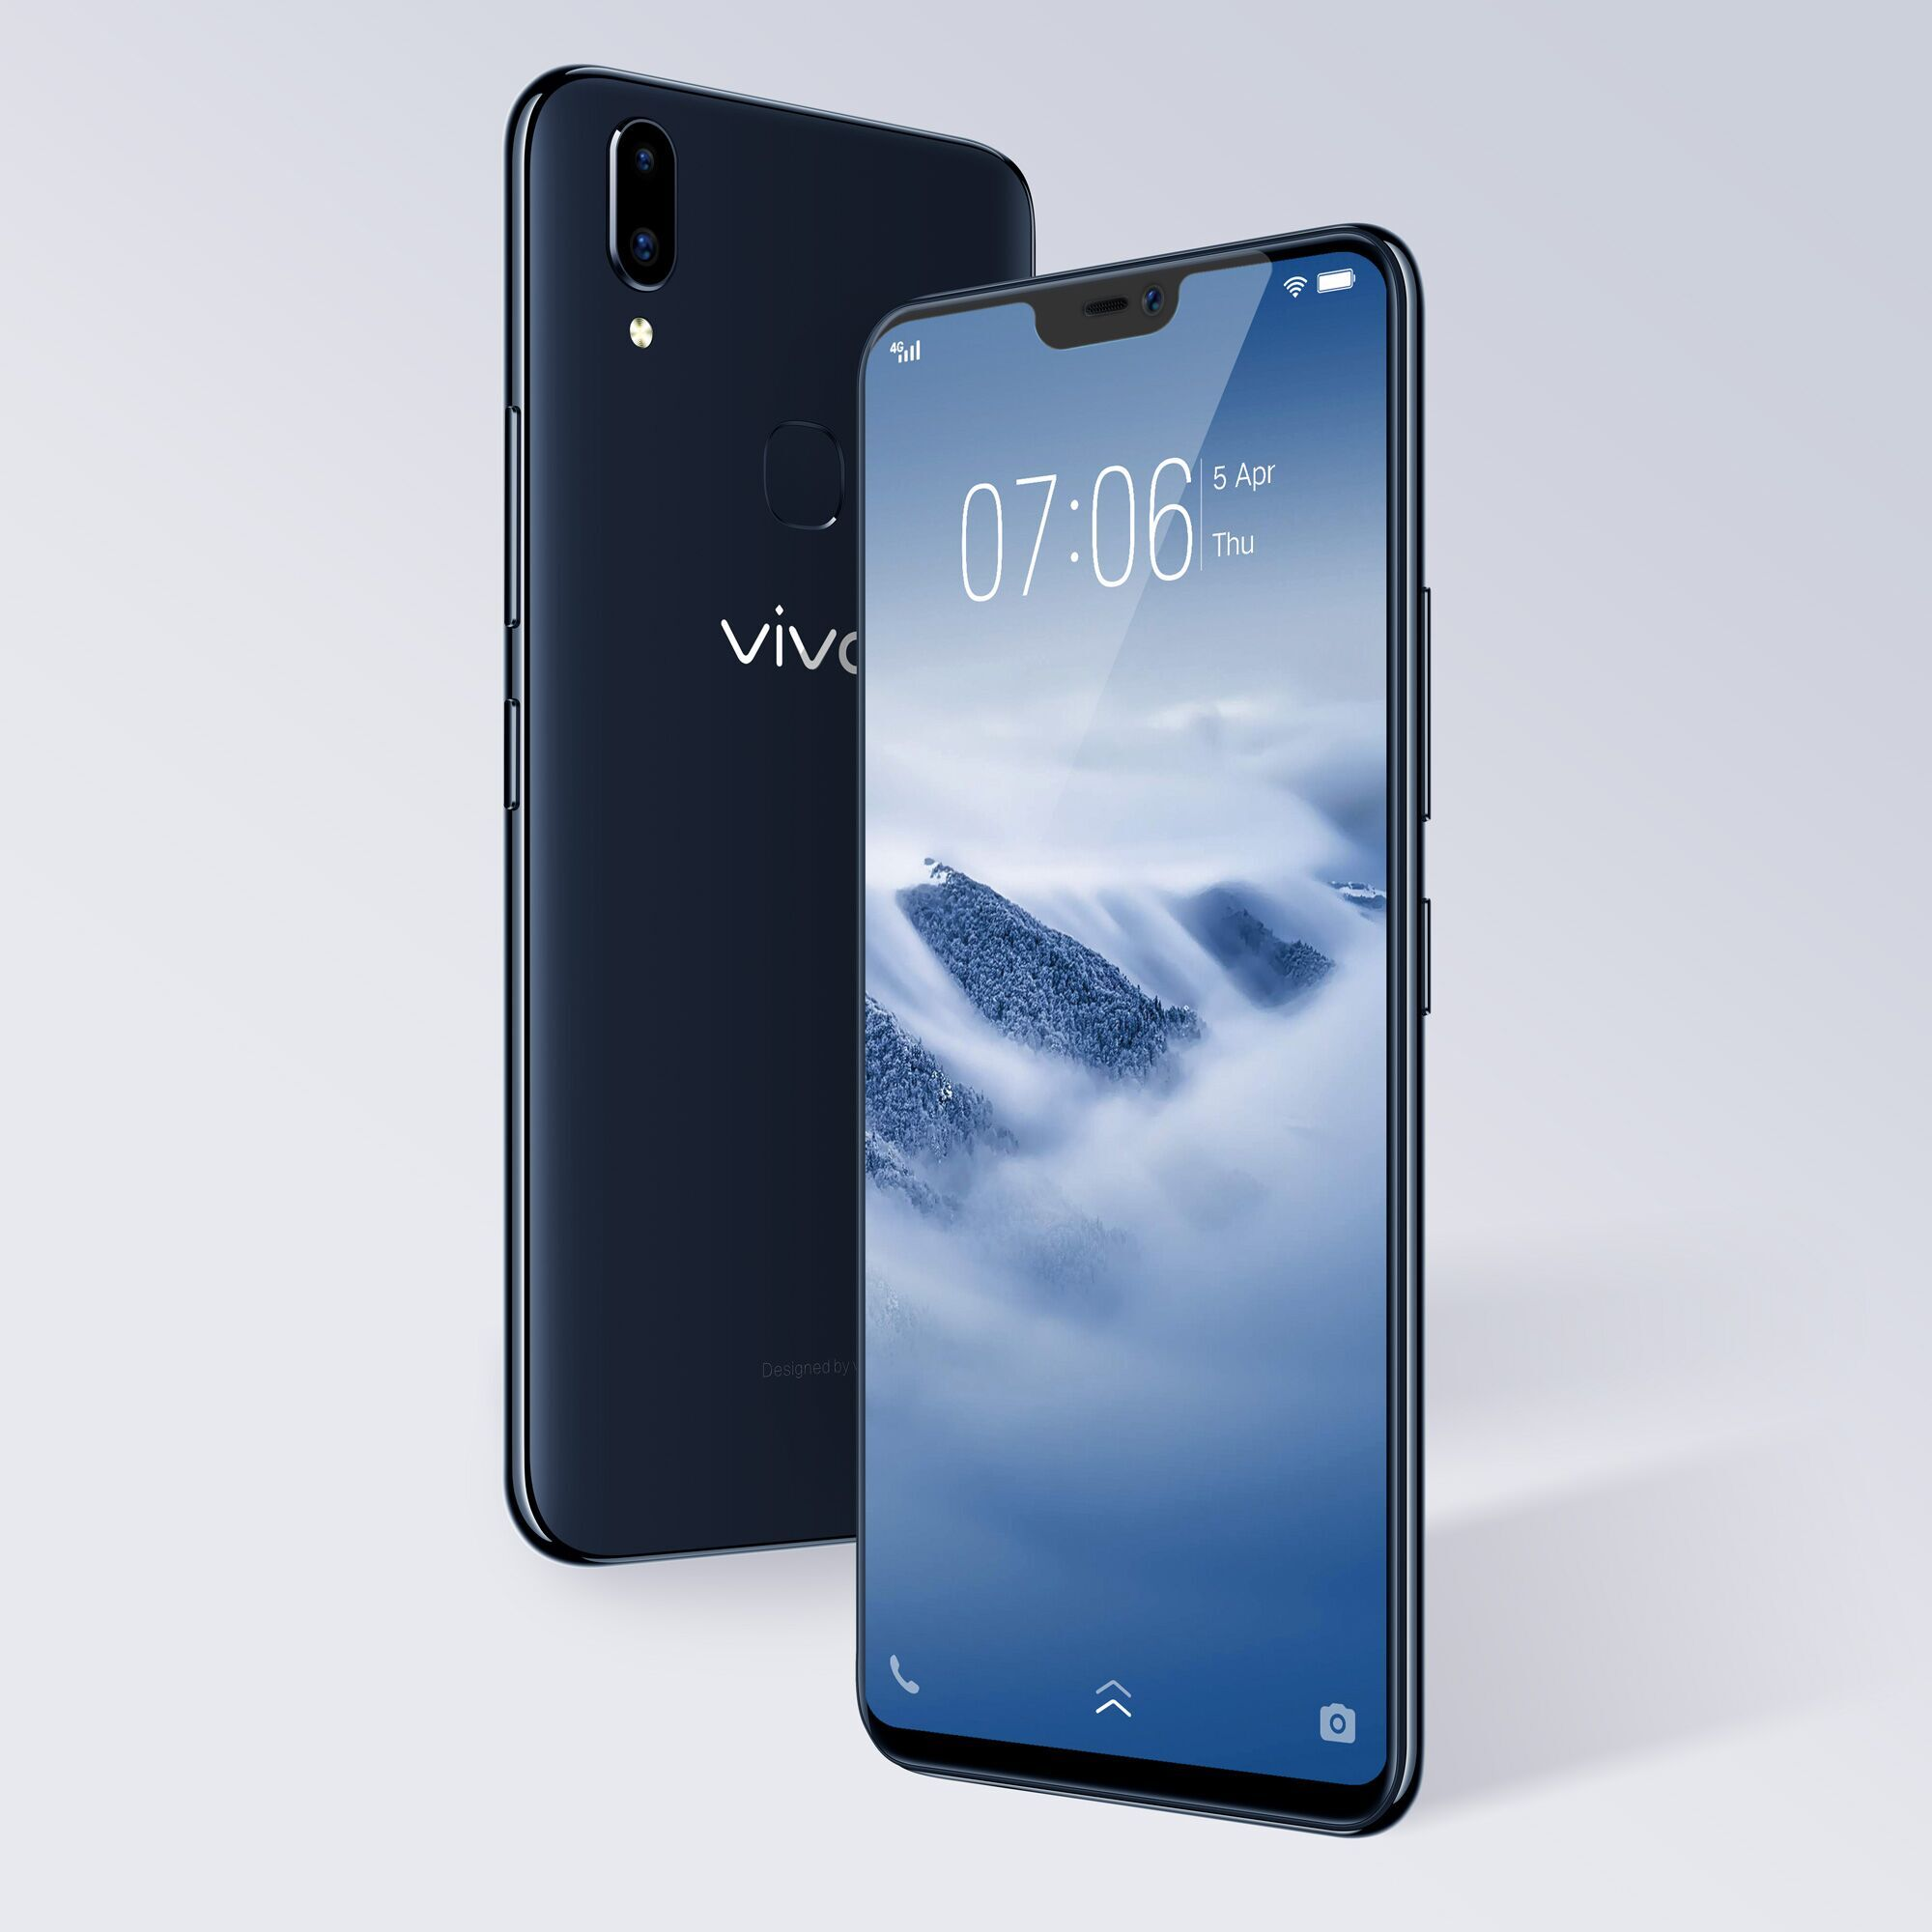 Vivo will go down in the books of history as the first smartphone vendor to unveil a smartphone with an in display fingerprint scanner